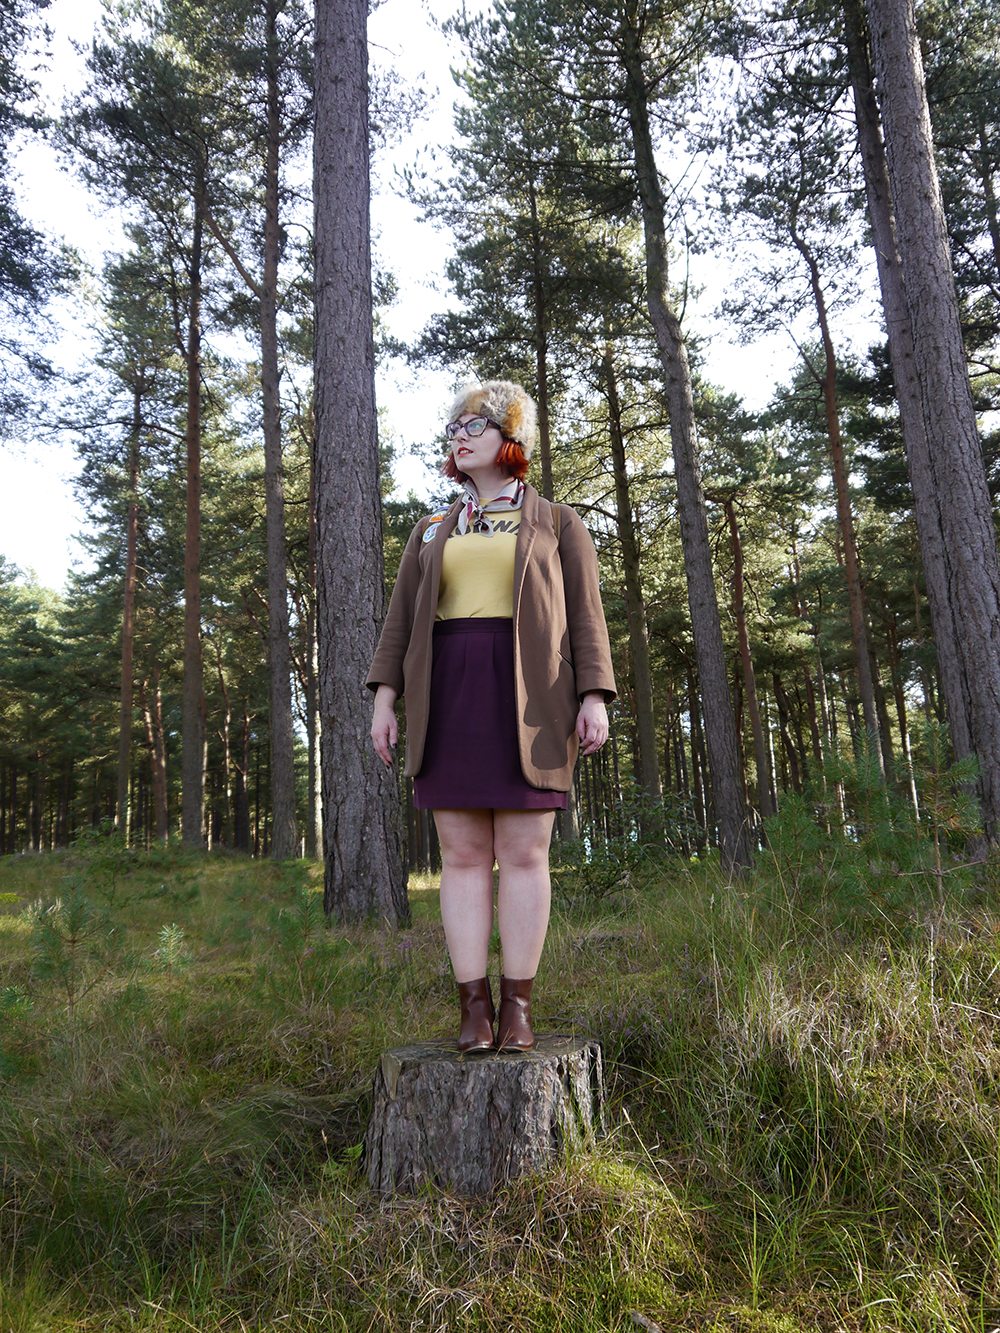 Scottish blogger, style blogger, Moonrise Kingdom outfit, Moonrise Kingdom style, costume idea, Wes Anderson inspired outfit, Sam Moonrise Kingdom, scout style, Moonrise kingdom inspired outfit, vintage style, fur hat, Spex Pistols glasses, patches for adventurers, Lucky Dip Club patches, Olivia Mew cat scarf, vintage Brownies tshirt, Rag Trade Vintage, primark backpack, adventurer style